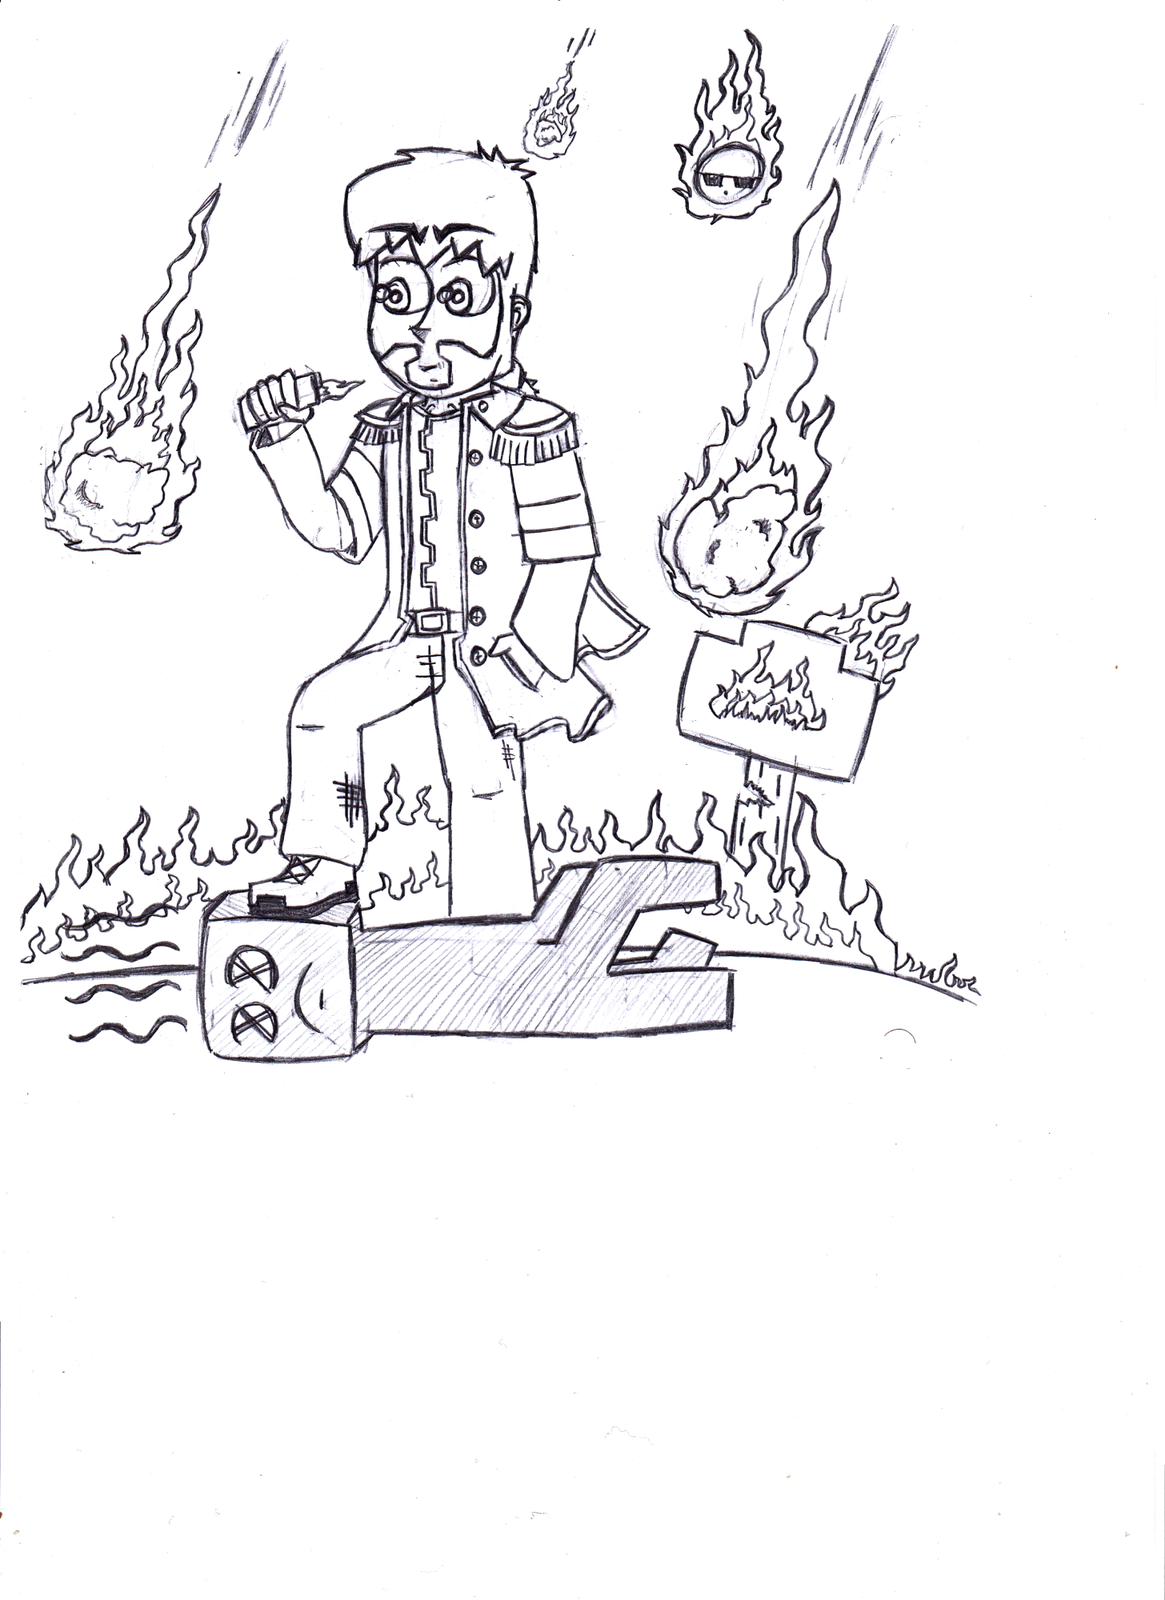 minecraft coloring pages of dantdm - photo#31